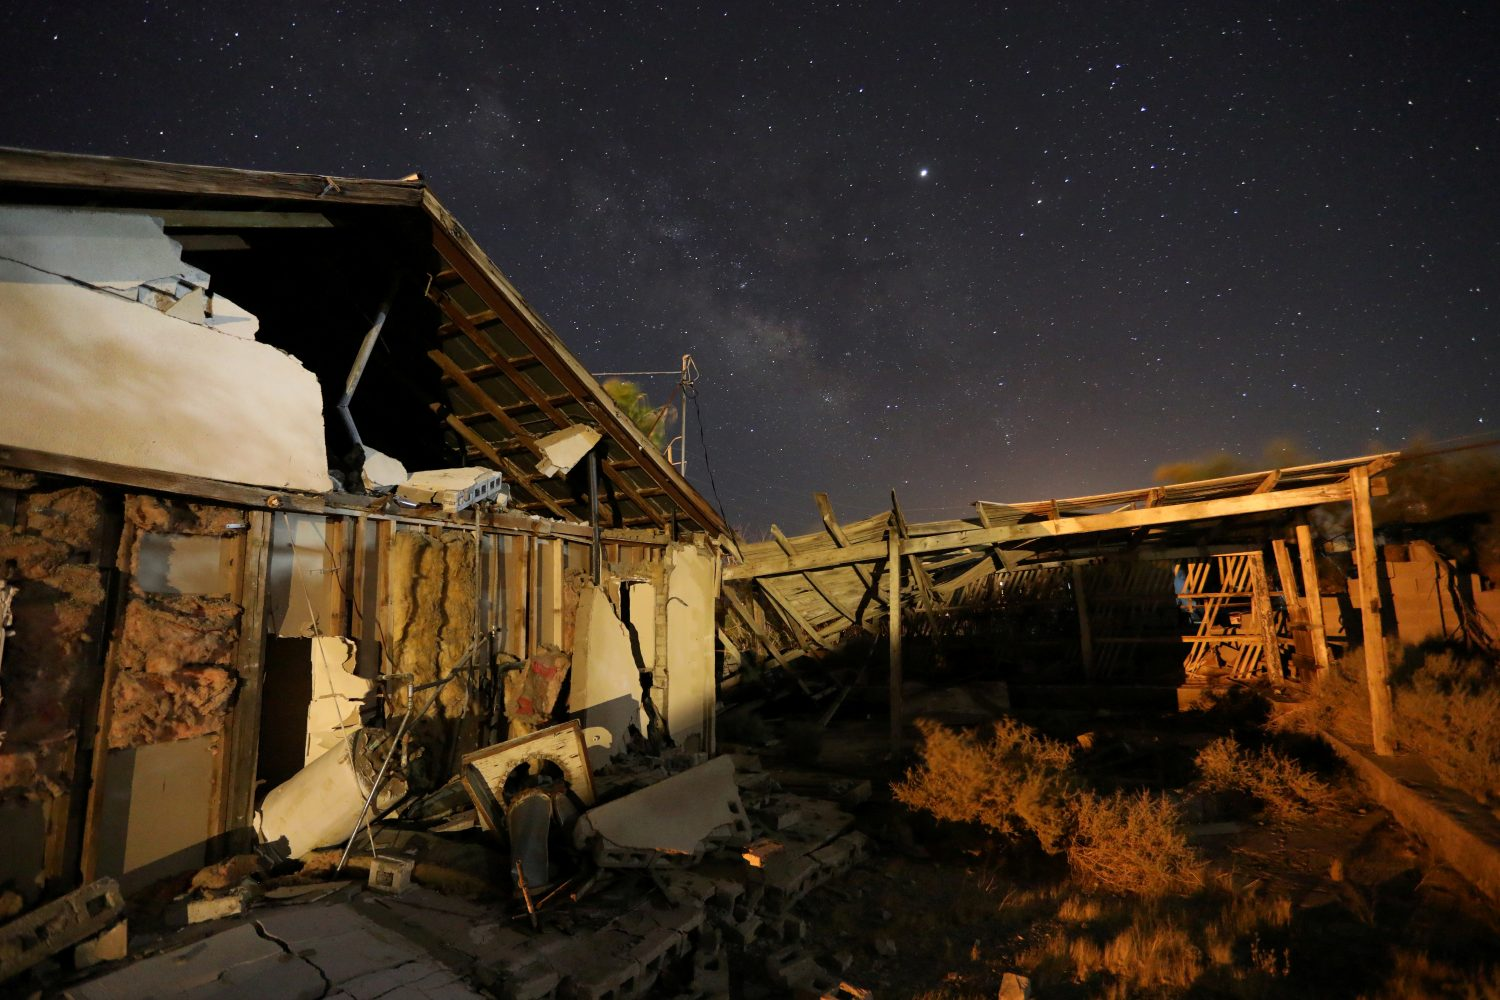 A house left destroyed by a powerful magnitude 7.1 earthquake, triggered by a 6.4 the previous day, is seen at night near the epicenter in Trona, California, U.S., July 6, 2019. REUTERS/David McNew